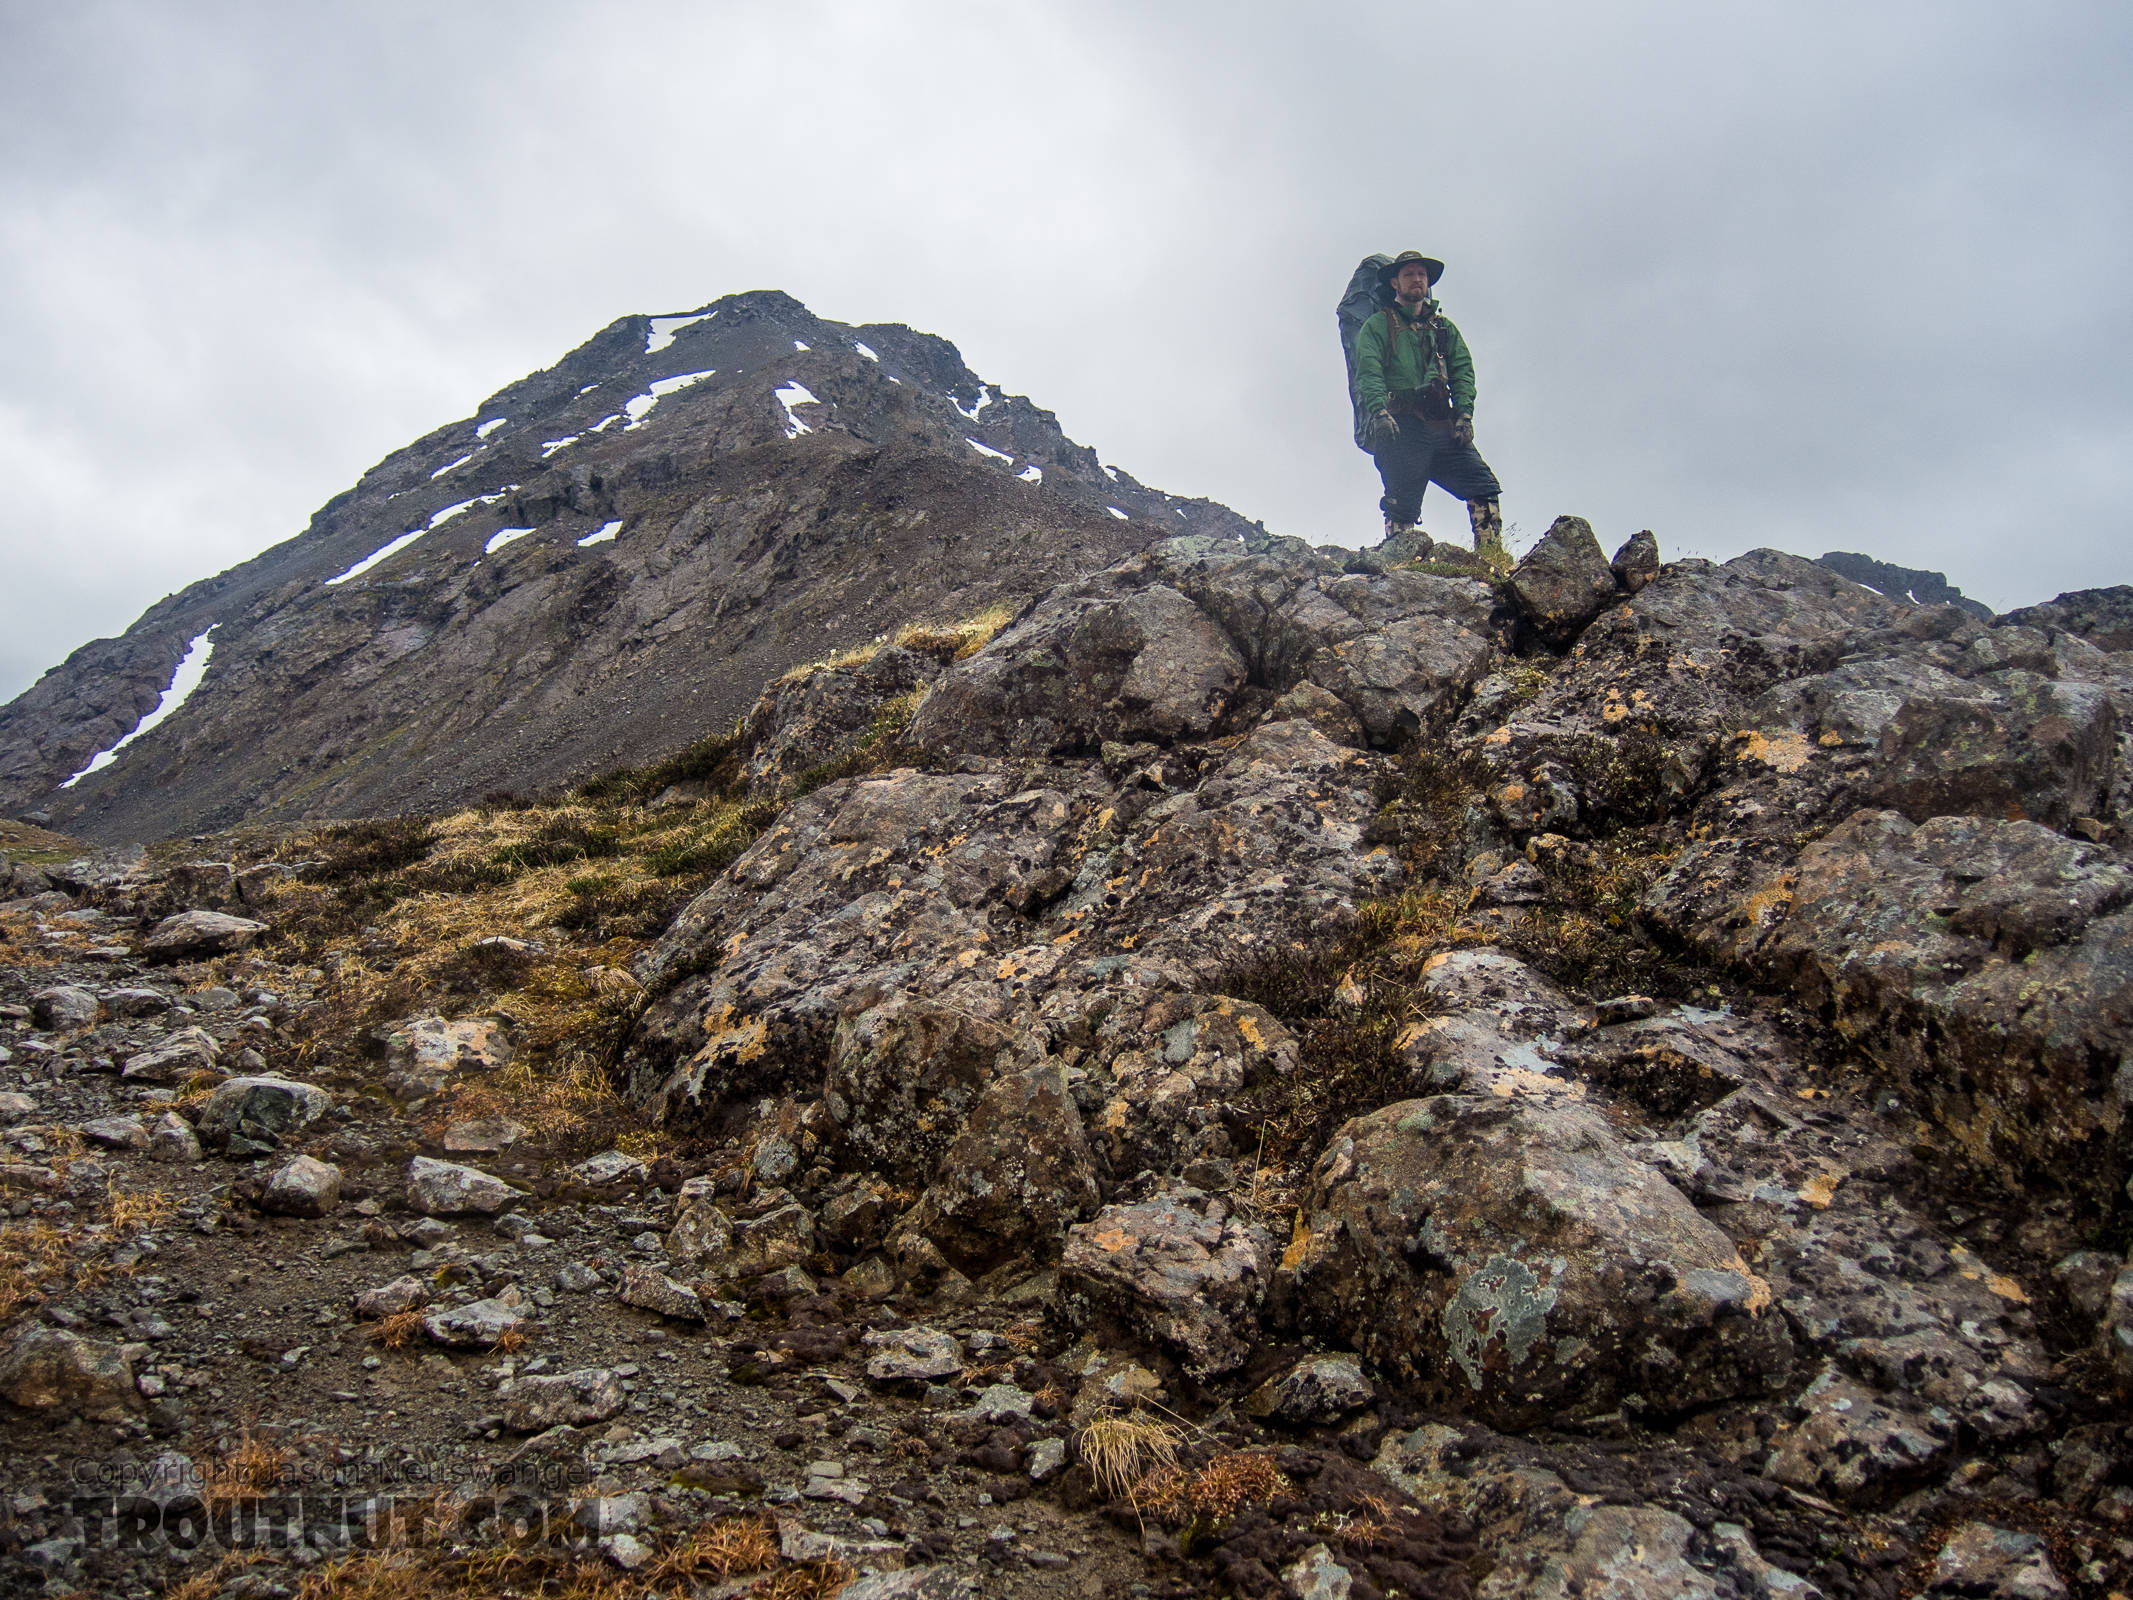 Standing atop the pass checking out the route down. From Clearwater Mountains in Alaska.